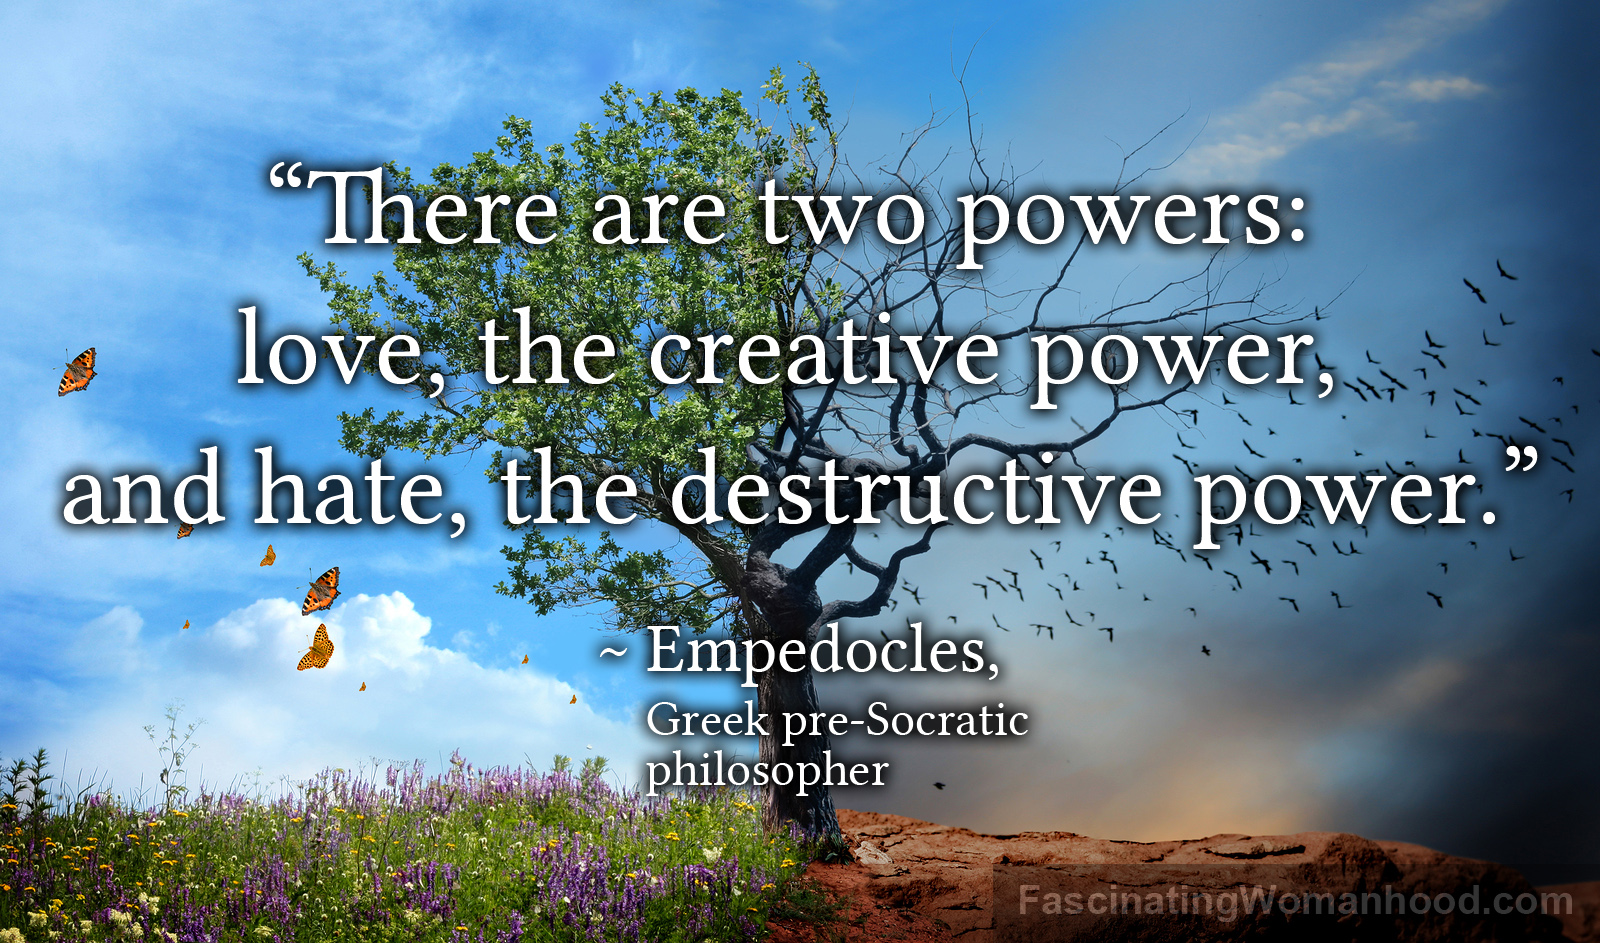 A Quote by Empedocles.jpg